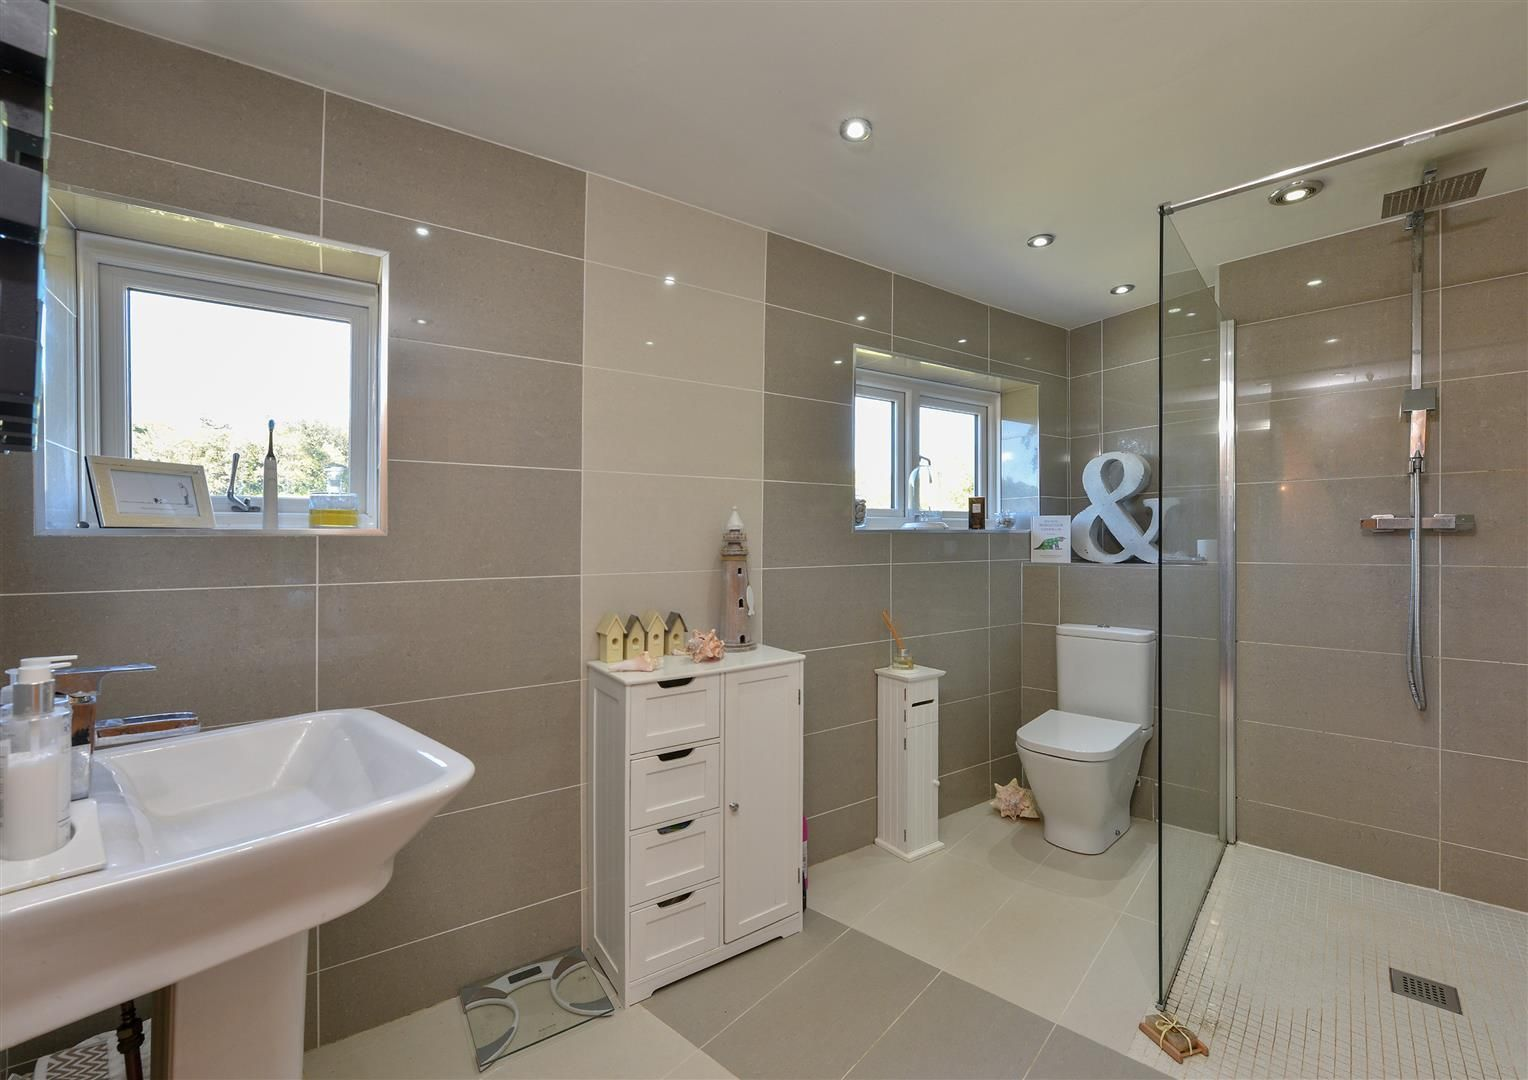 4 bed house for sale in Clent 20